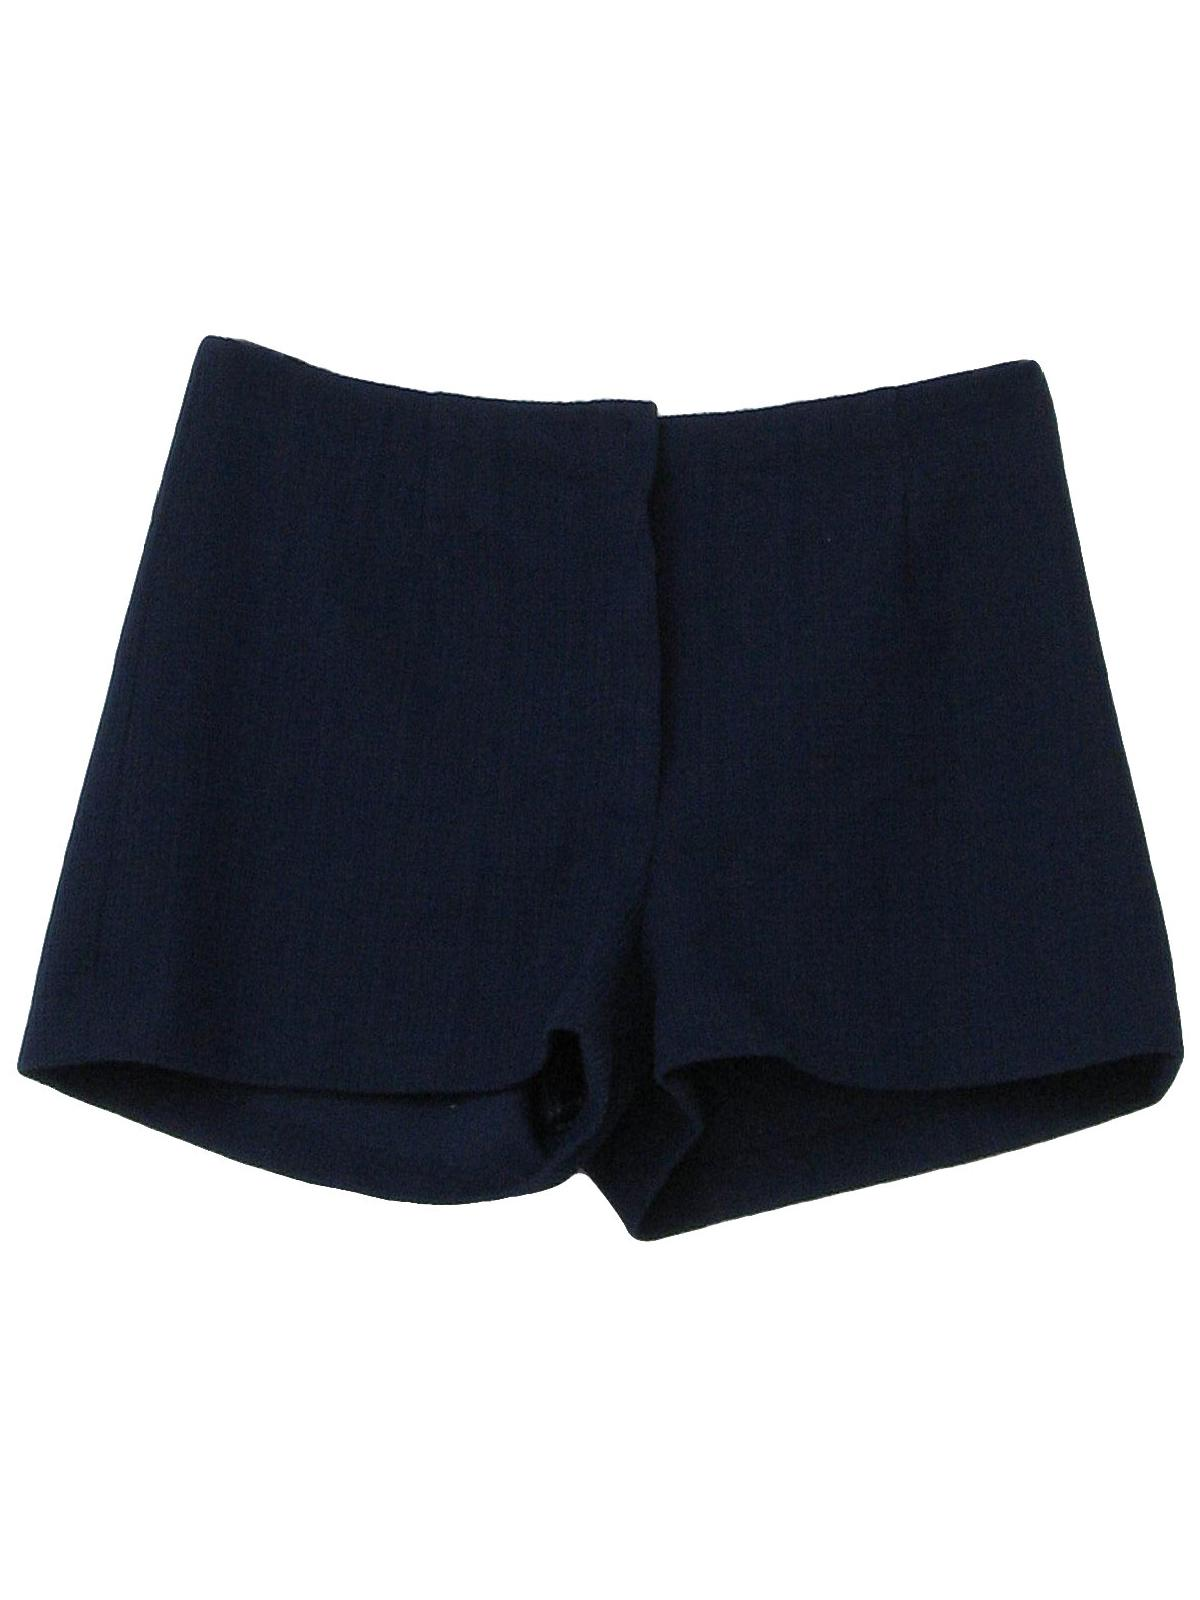 Navy Blue Short Shorts